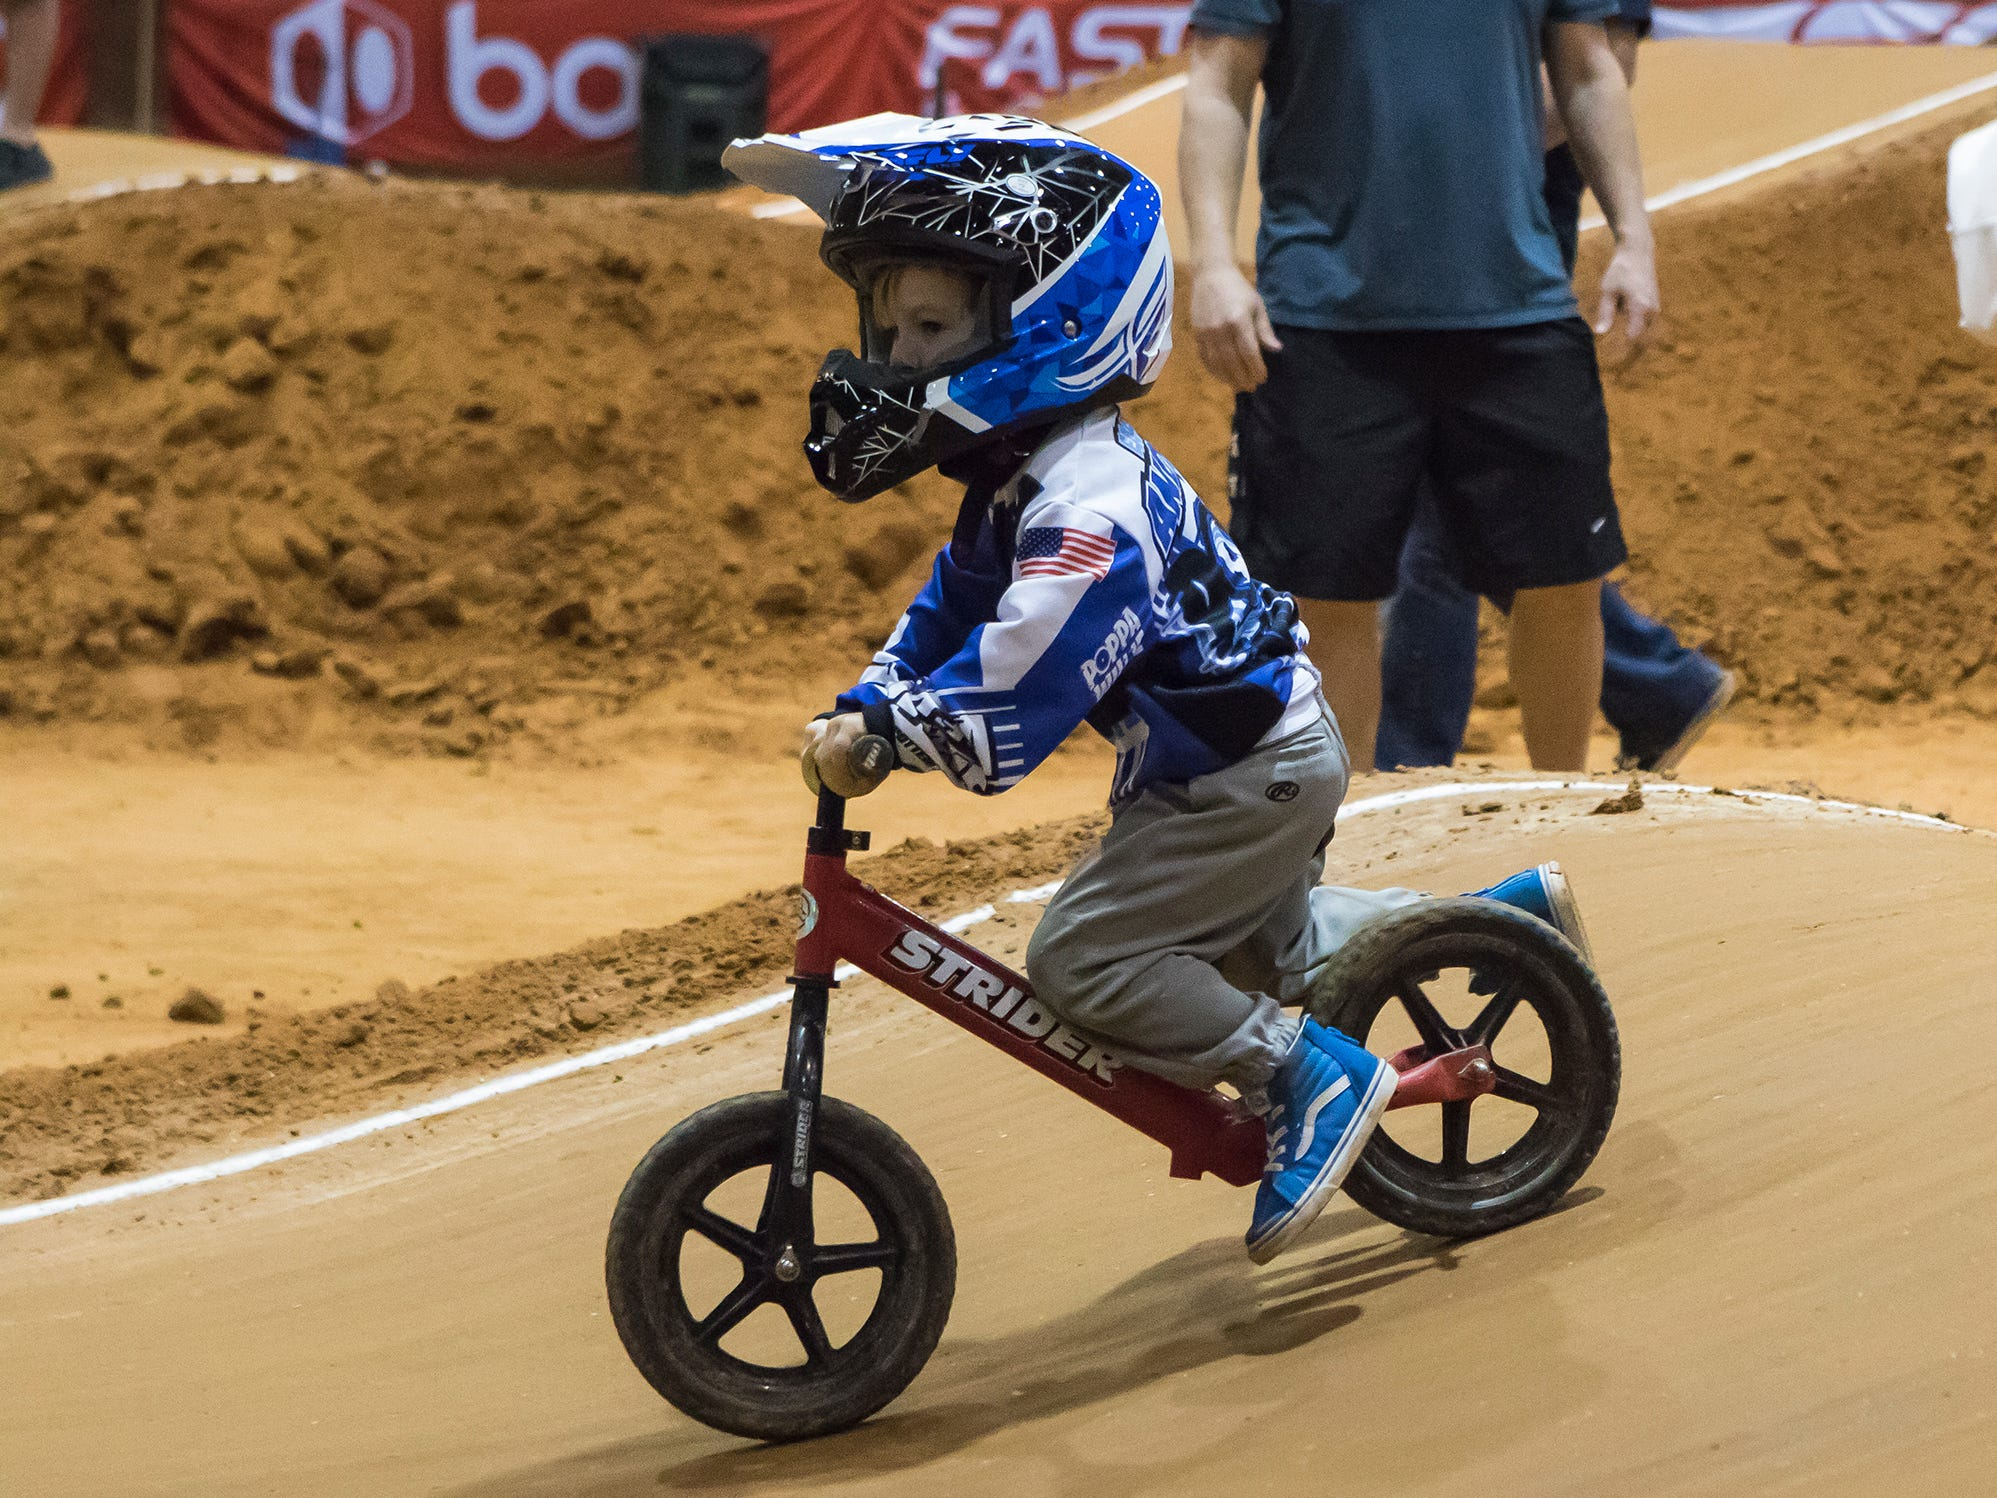 USA BMX came to the Ike Hamilton Expo Center in West Monroe, La. for the Cajun Nationals on March 9.